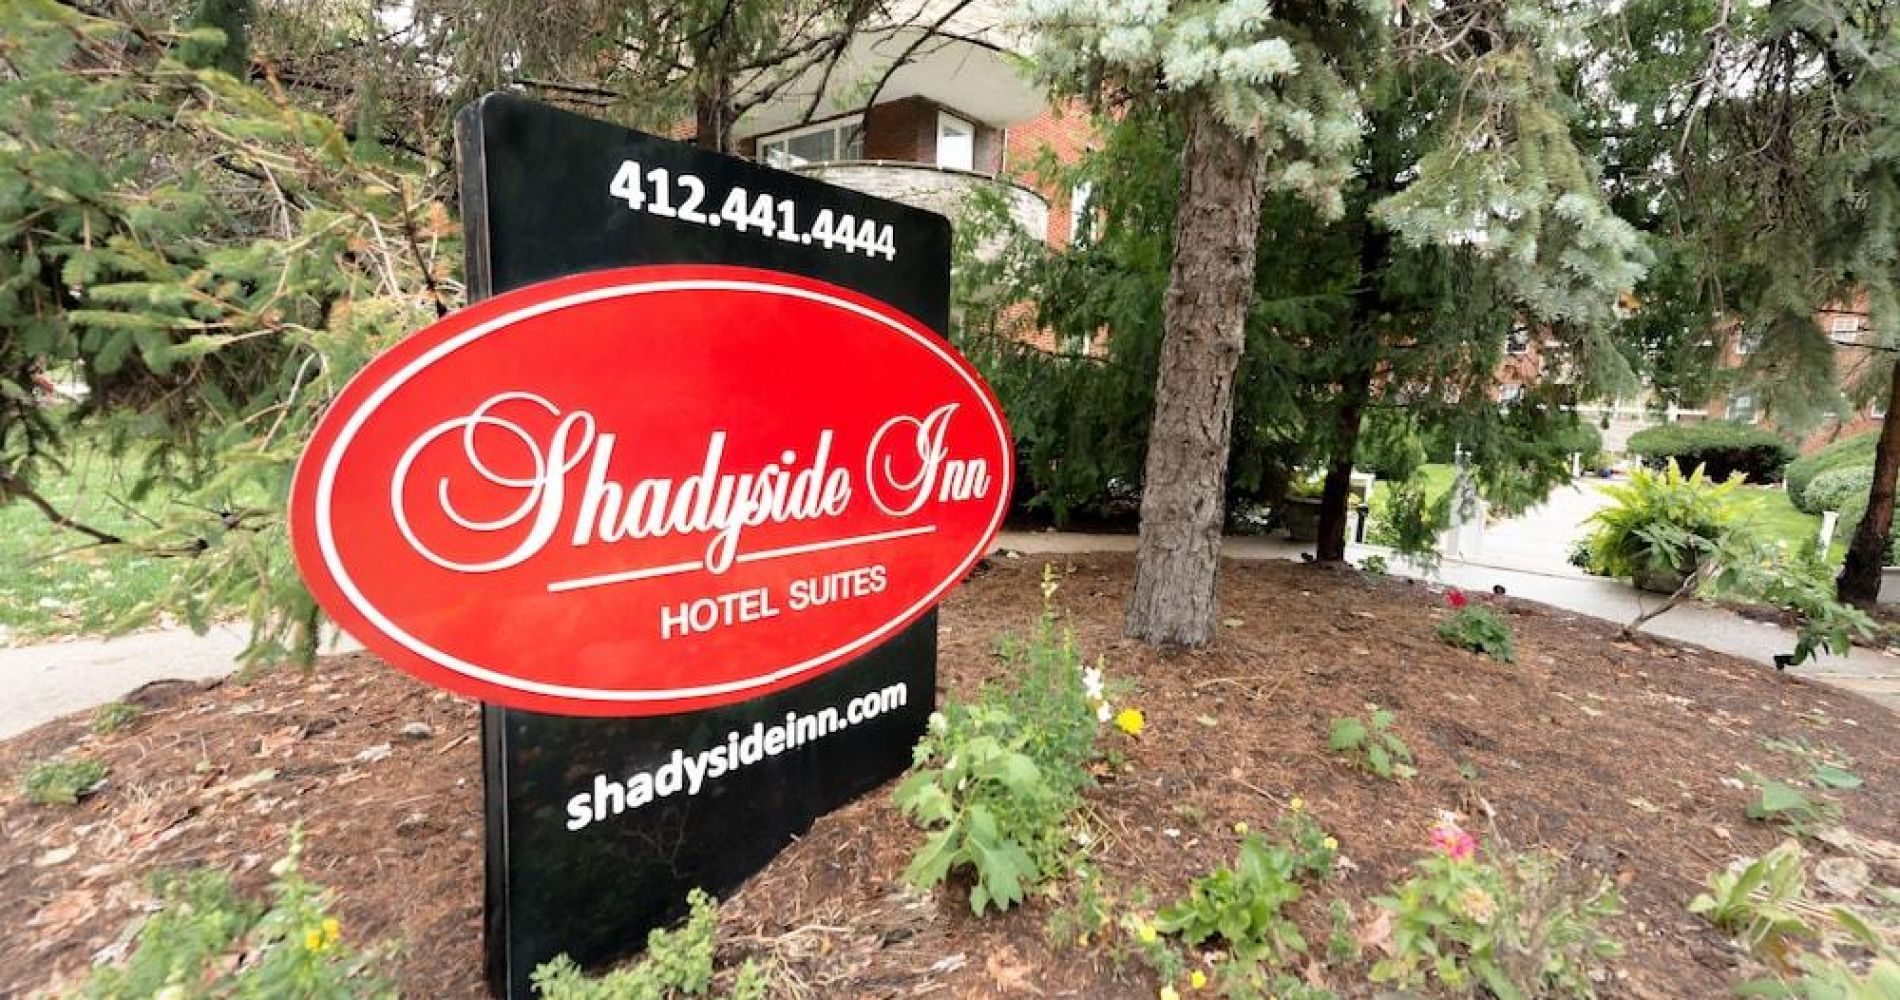 Shadyside Inn All Suites Hotel